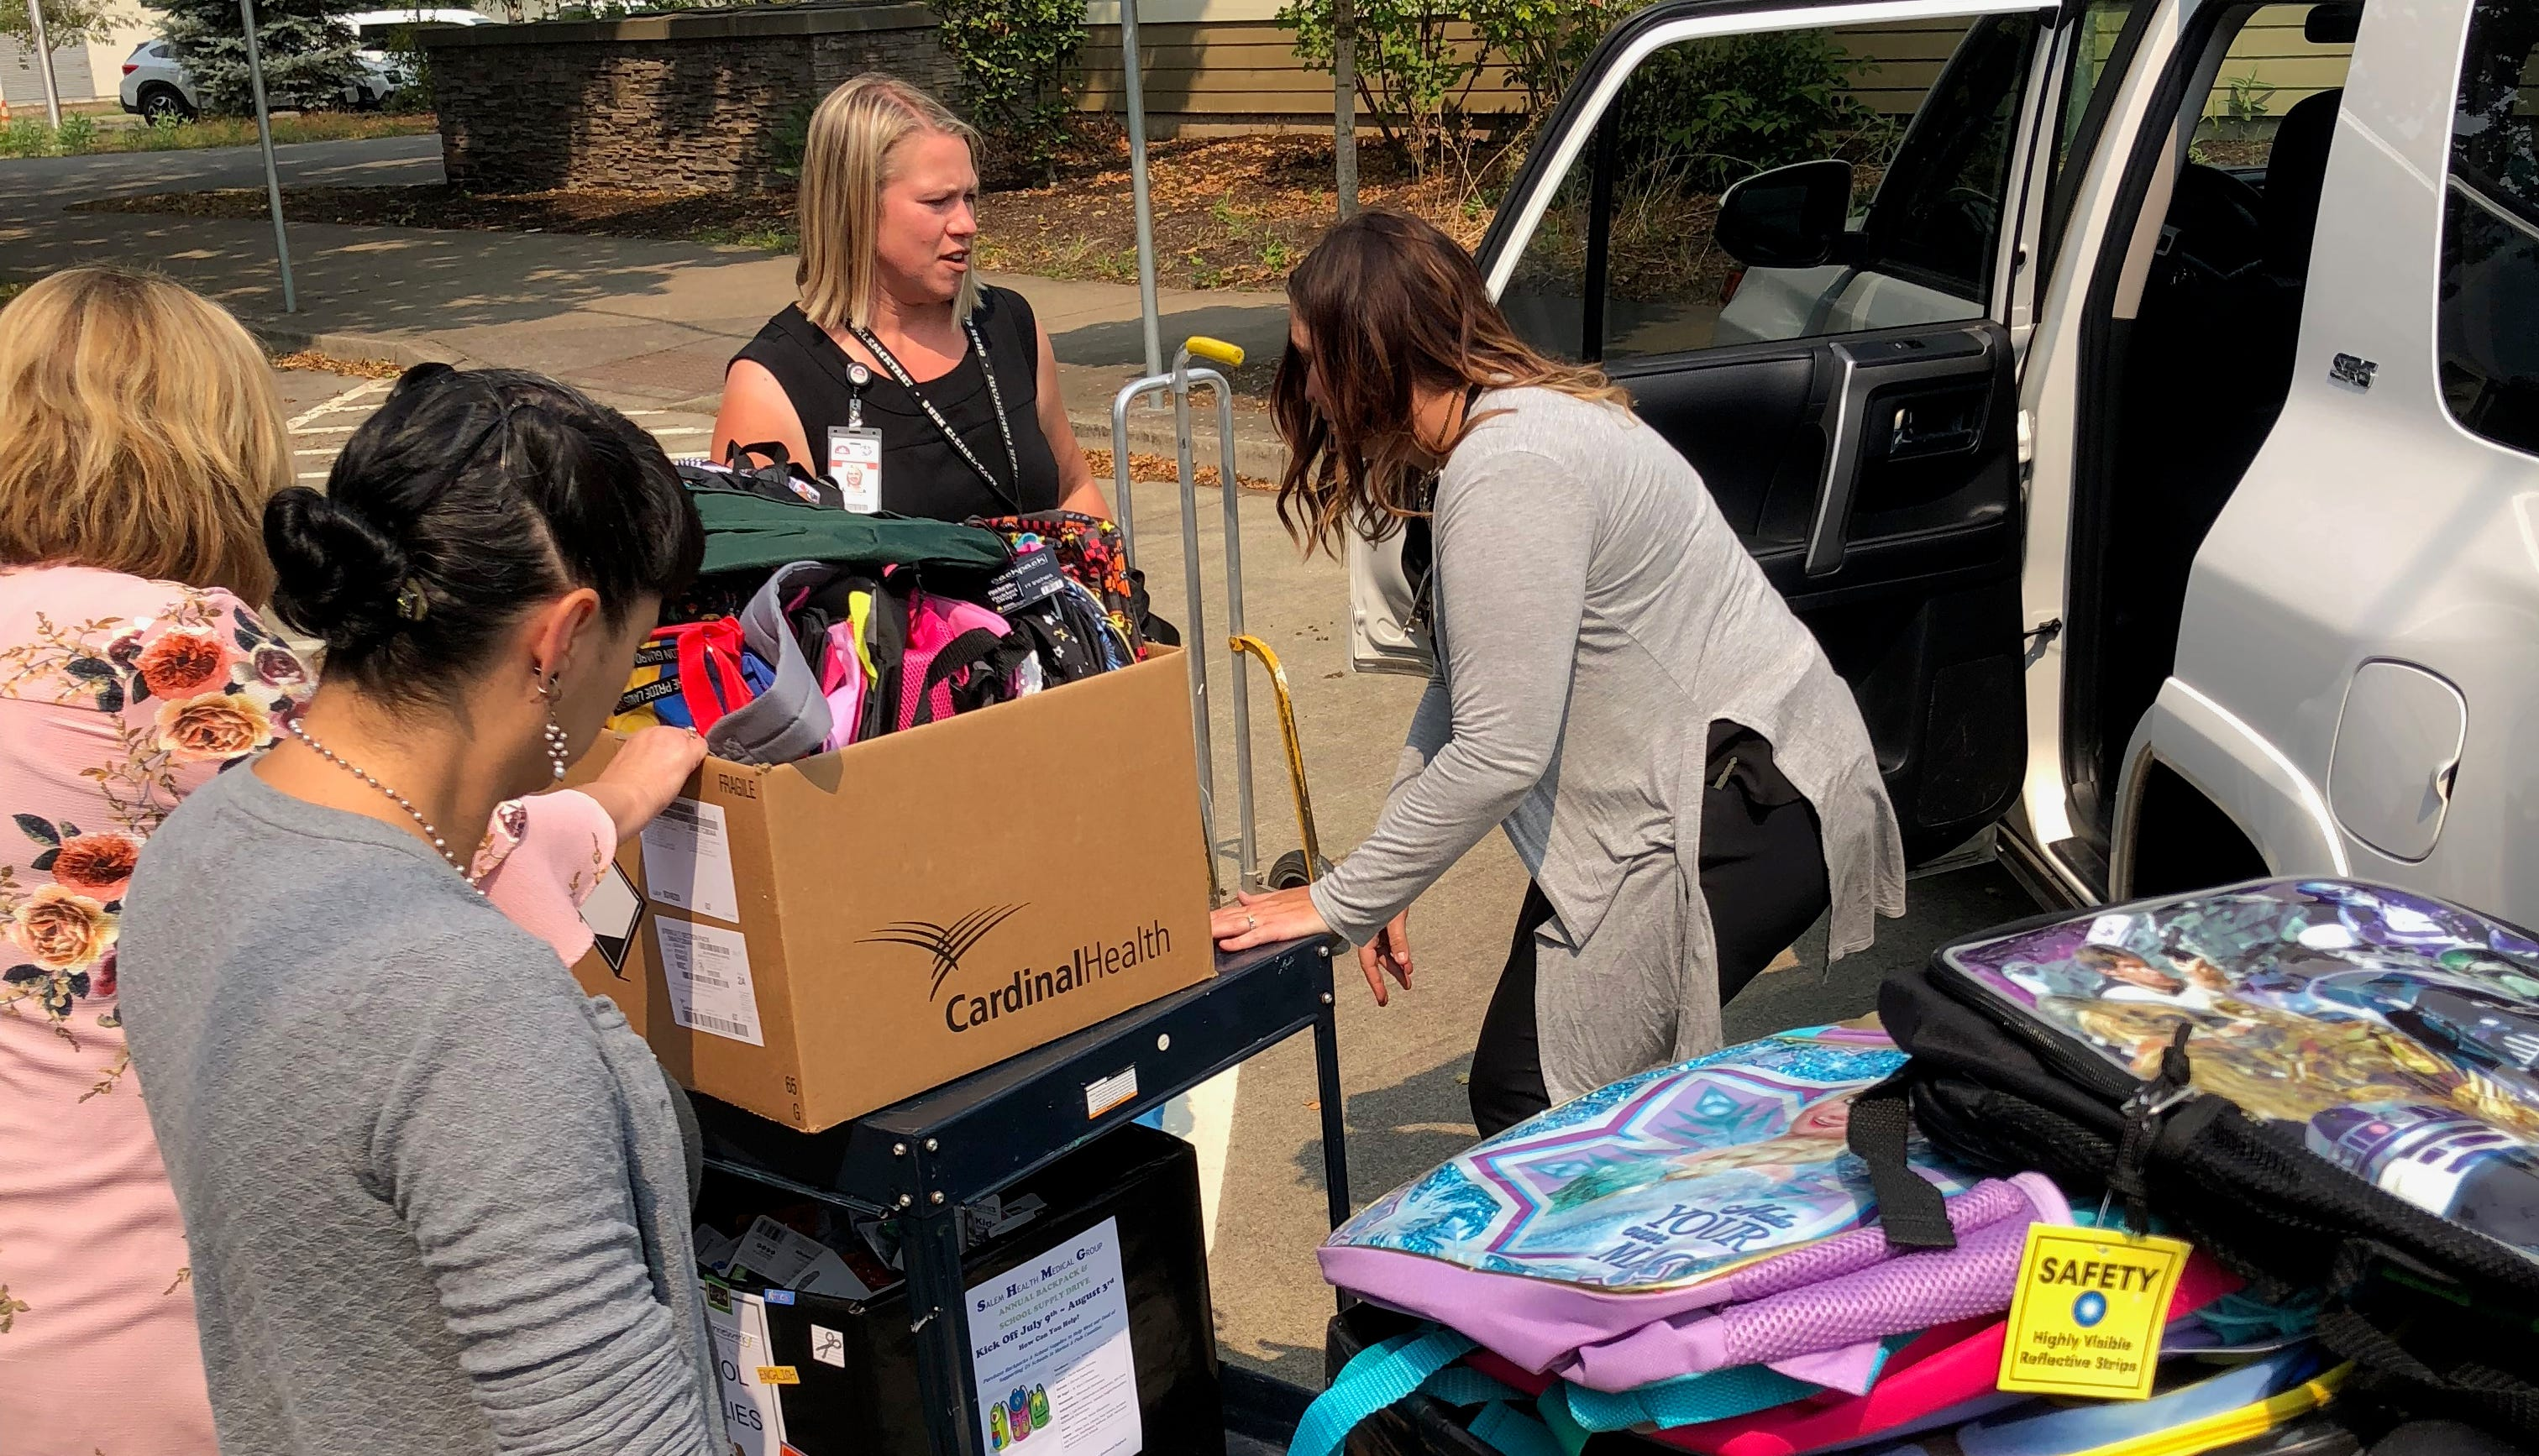 Salem Health employees deliver more than 3,500 backpacks to 31 schools